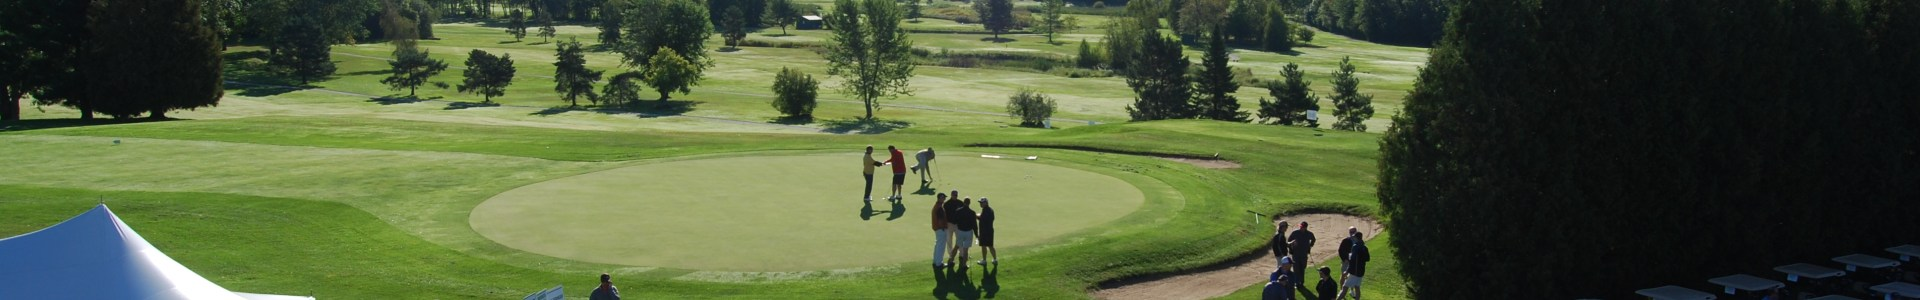 Register for the Tin Cup Tournament